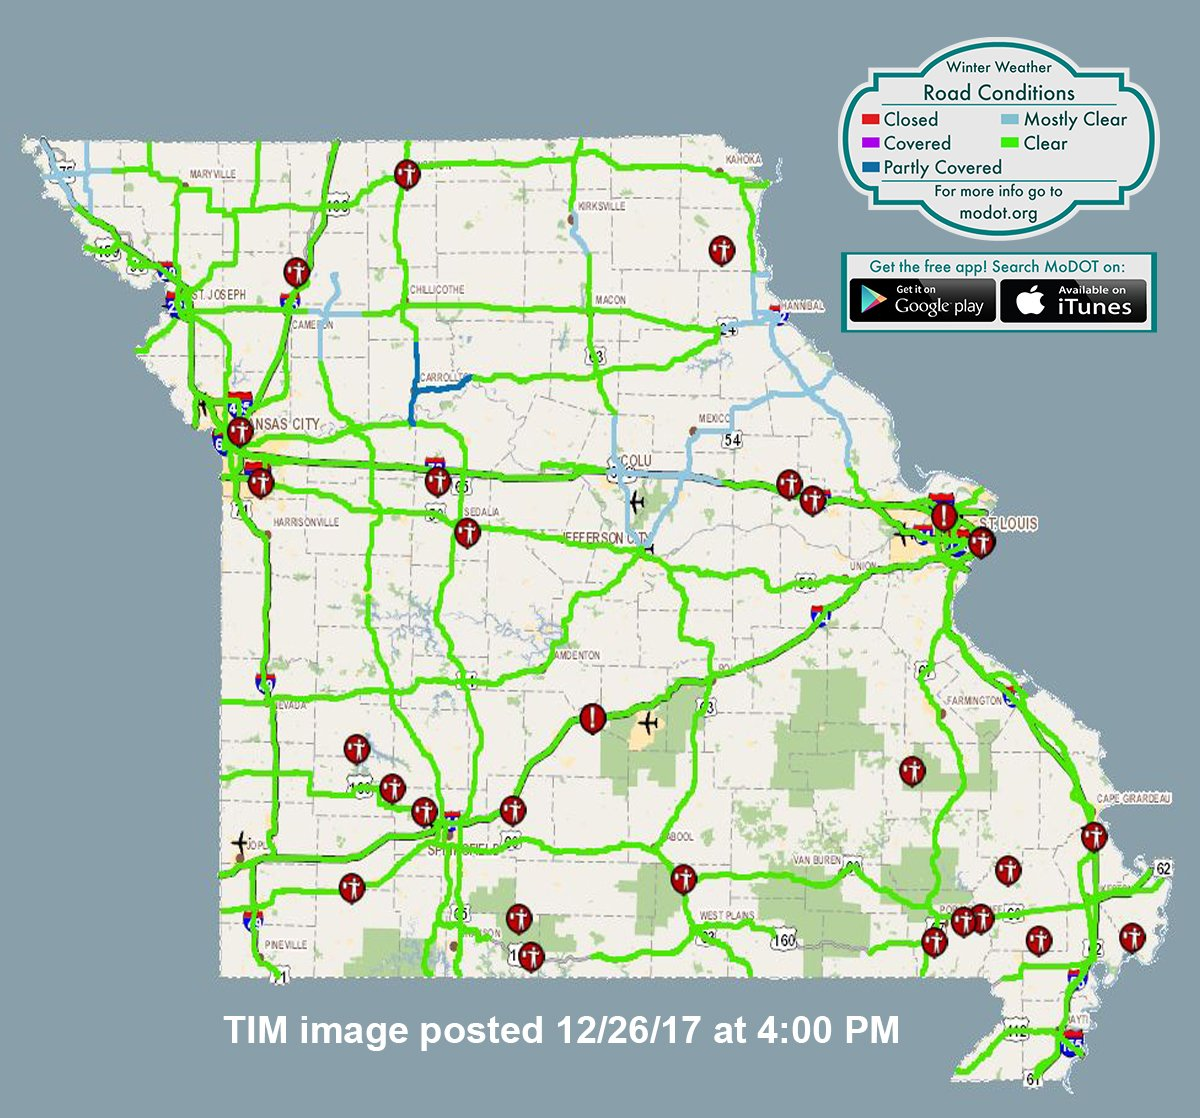 modot map road conditions map modot traveler information for  - jerome mo road conditions with driving and traffic flow check the modottraveler information map